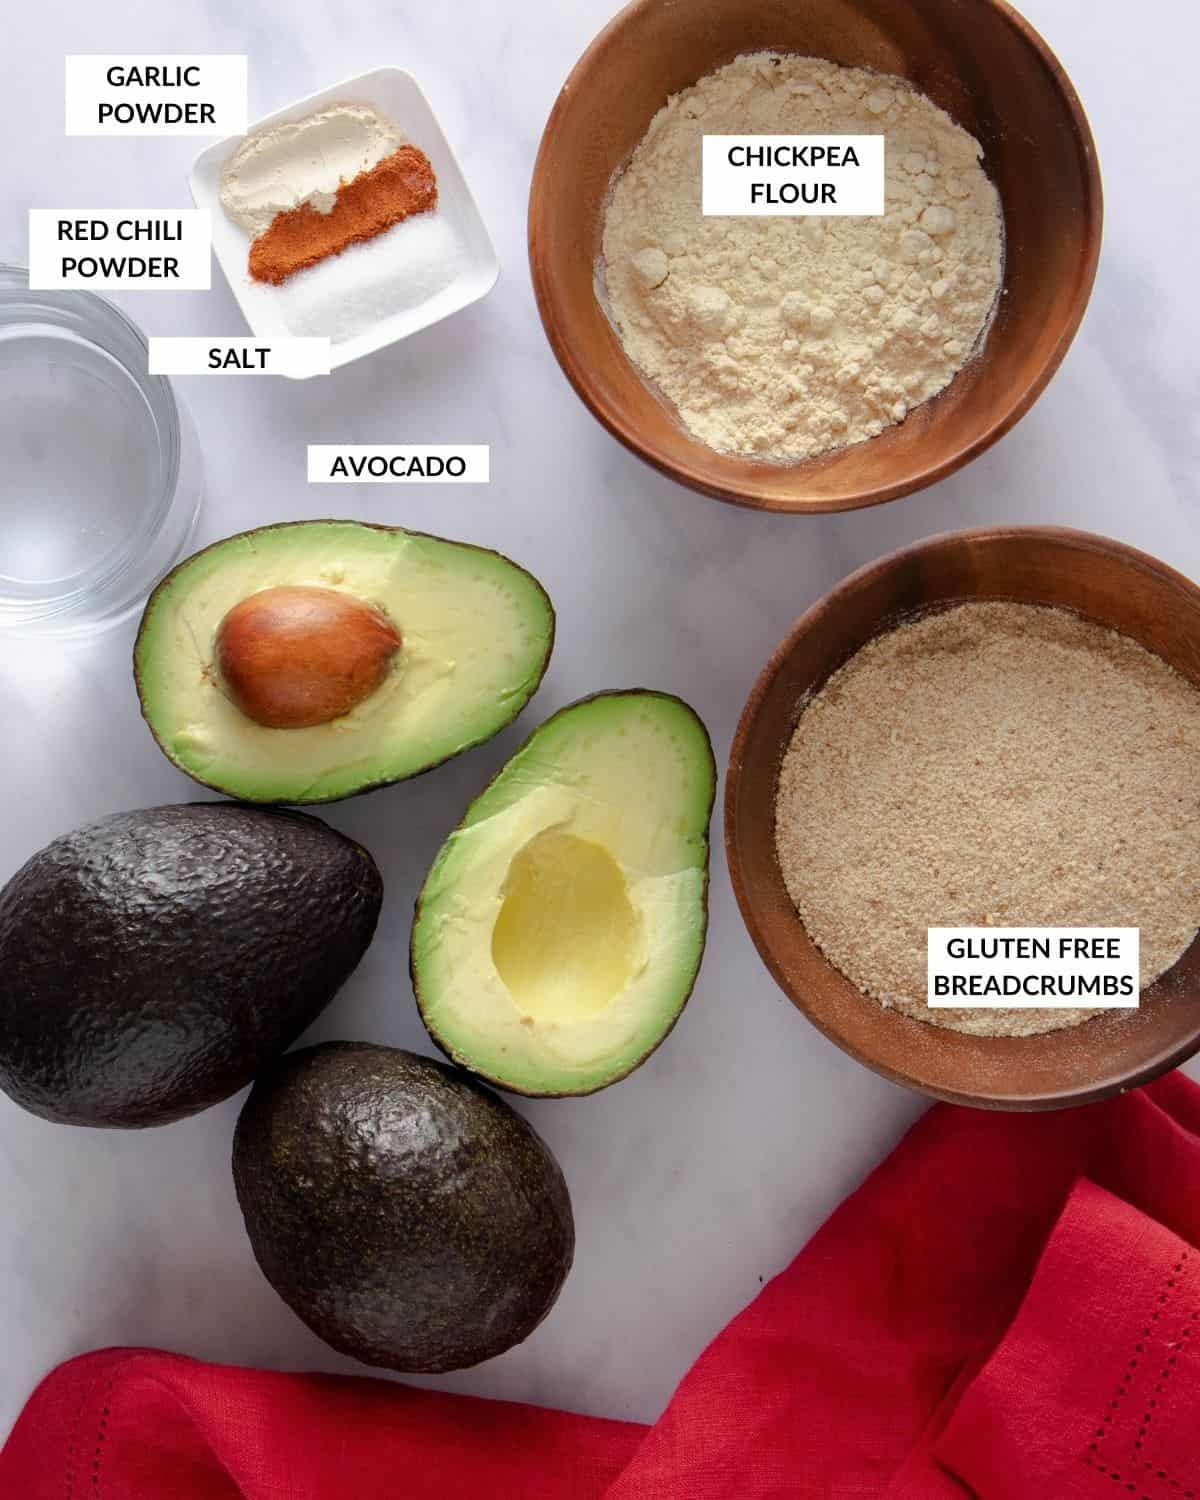 Labeled ingredient list for avocado fries - check recipe card for details!